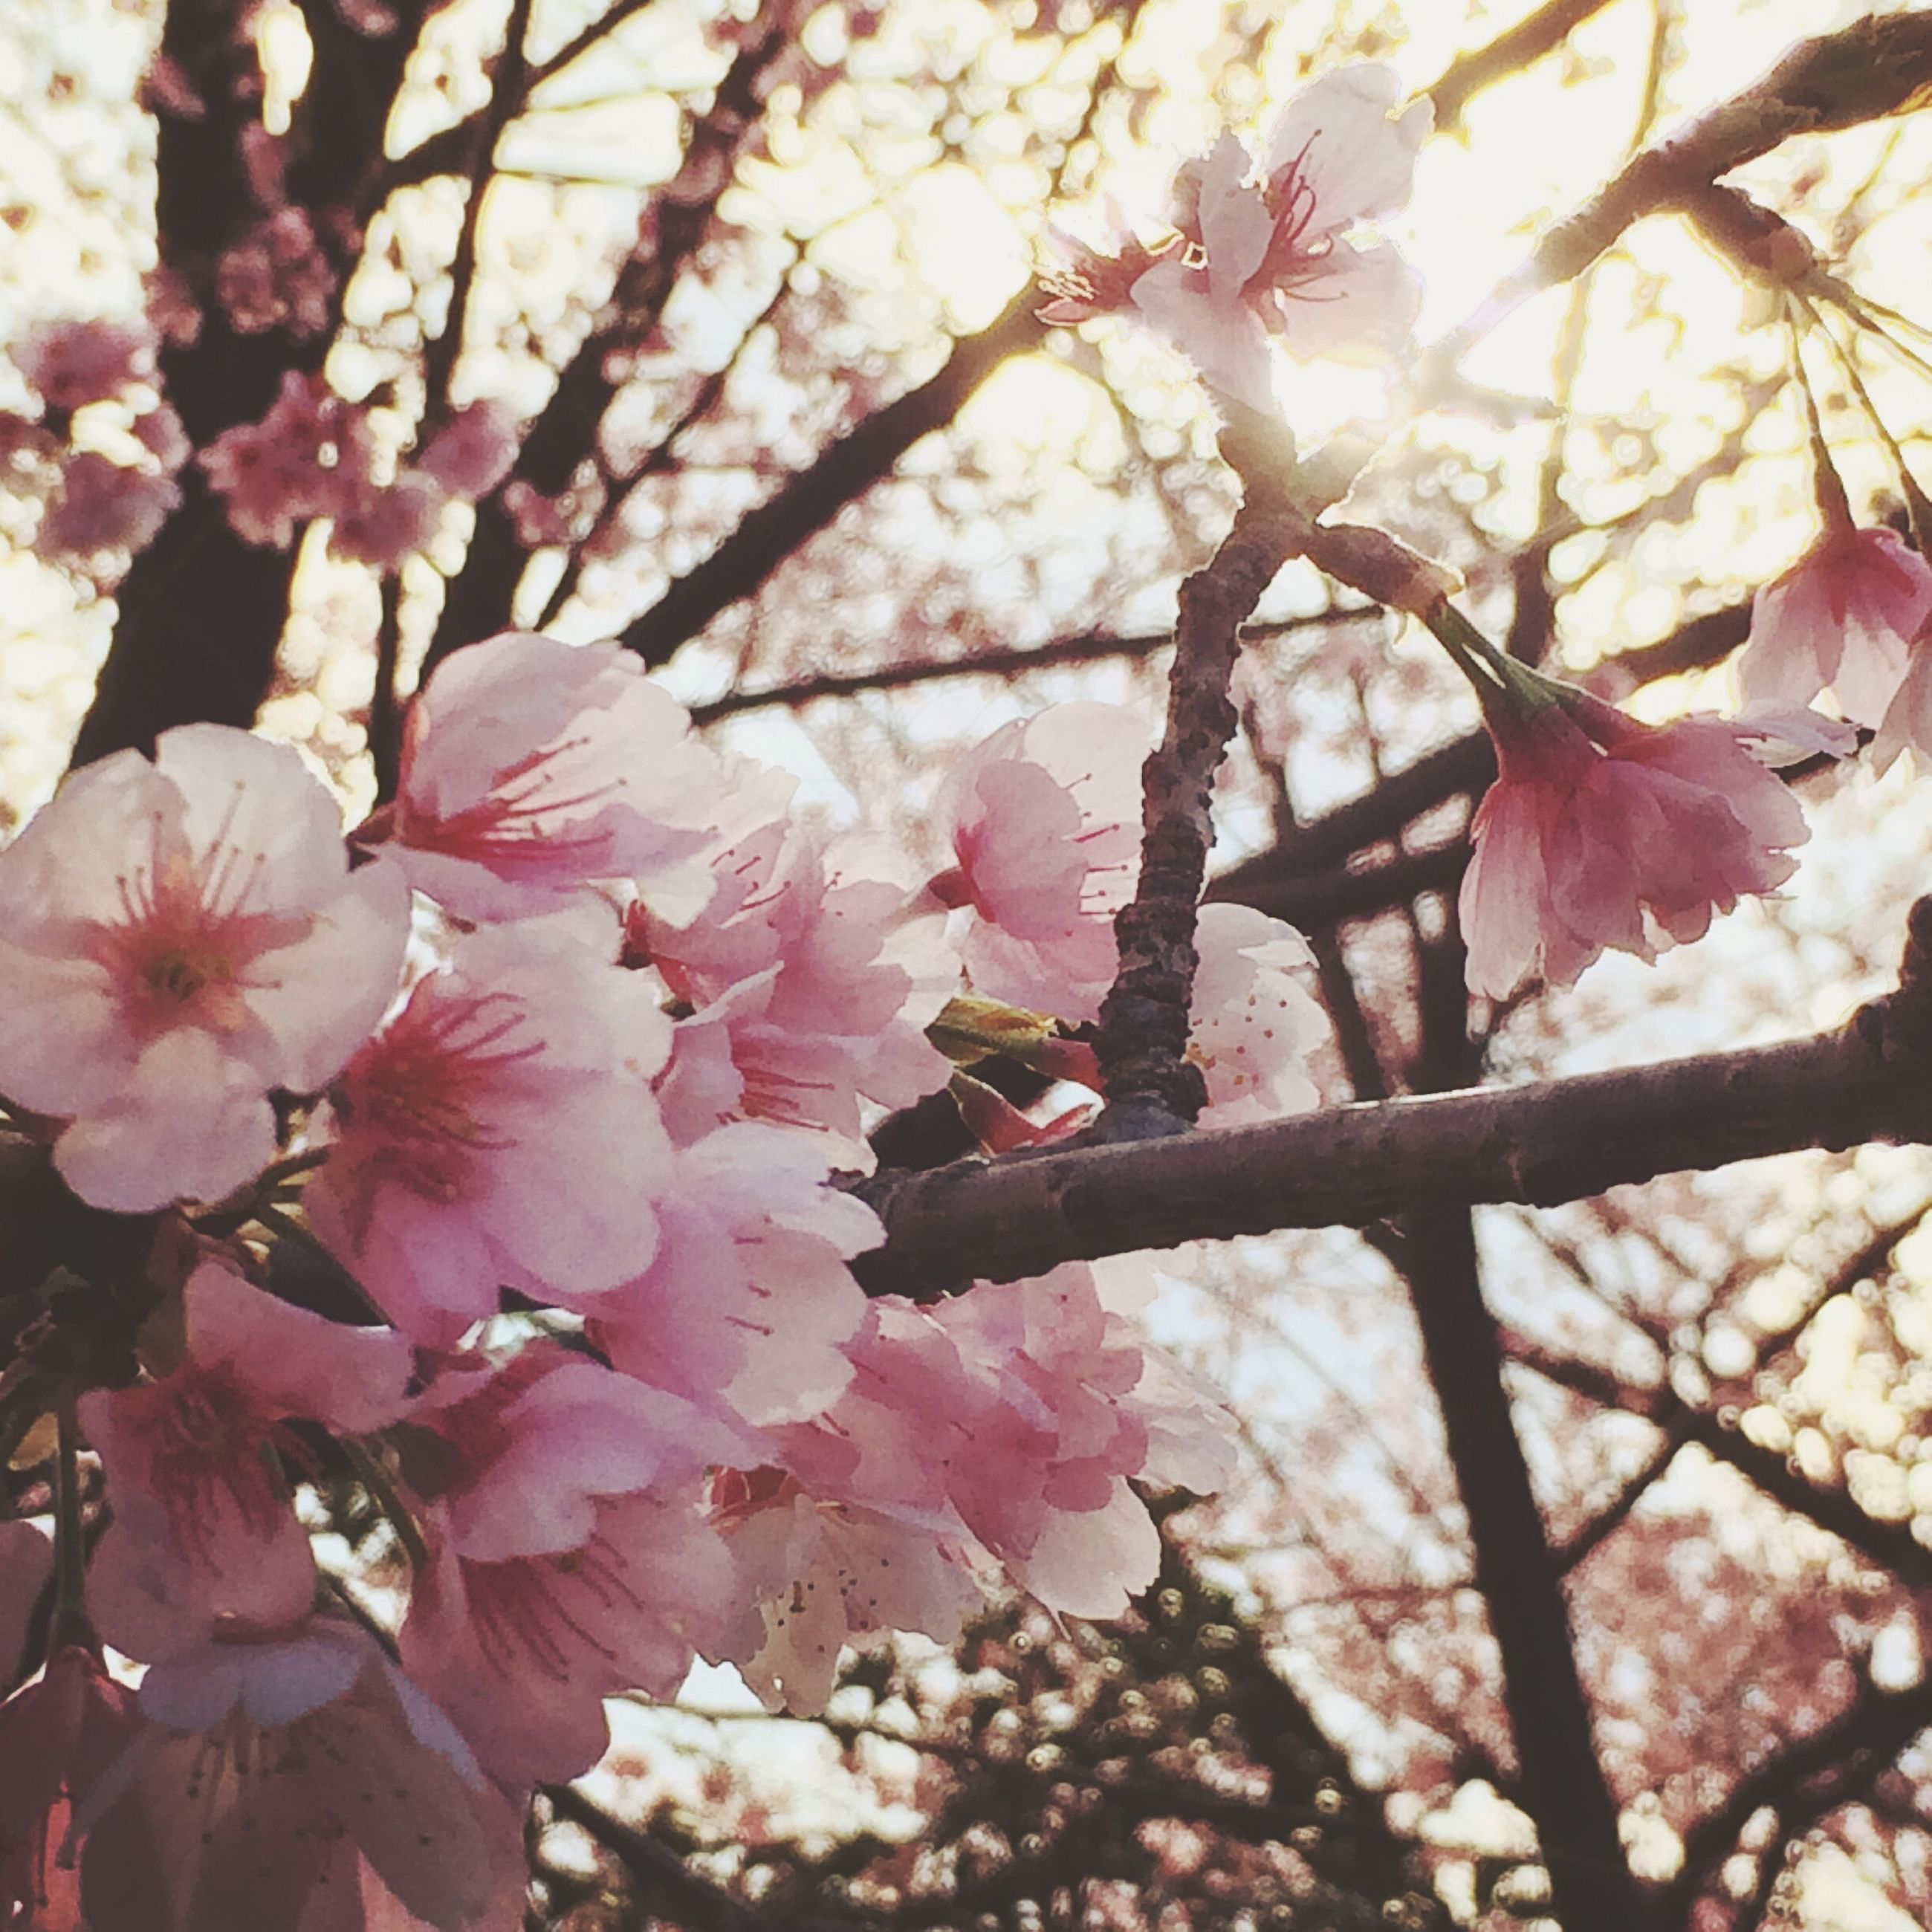 flower, branch, tree, pink color, freshness, growth, fragility, low angle view, cherry blossom, beauty in nature, nature, blossom, cherry tree, pink, close-up, petal, in bloom, springtime, twig, blooming